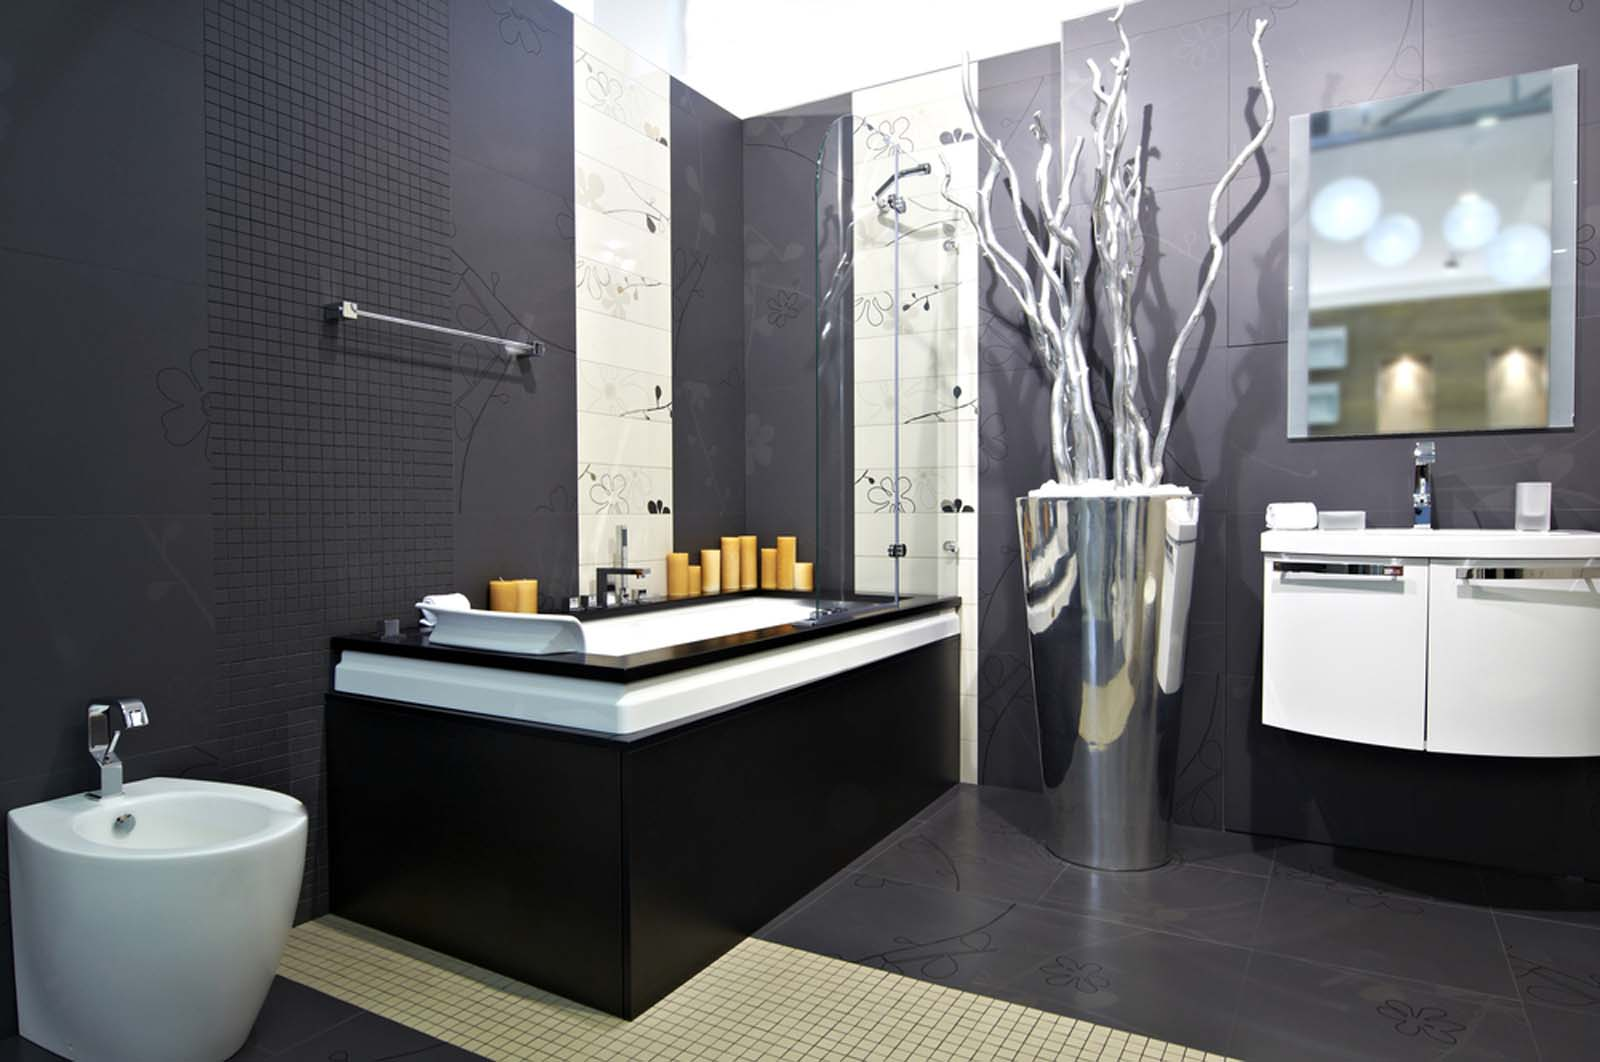 5 Bathroom Remodeling Tips to Fit Your Style and Budget